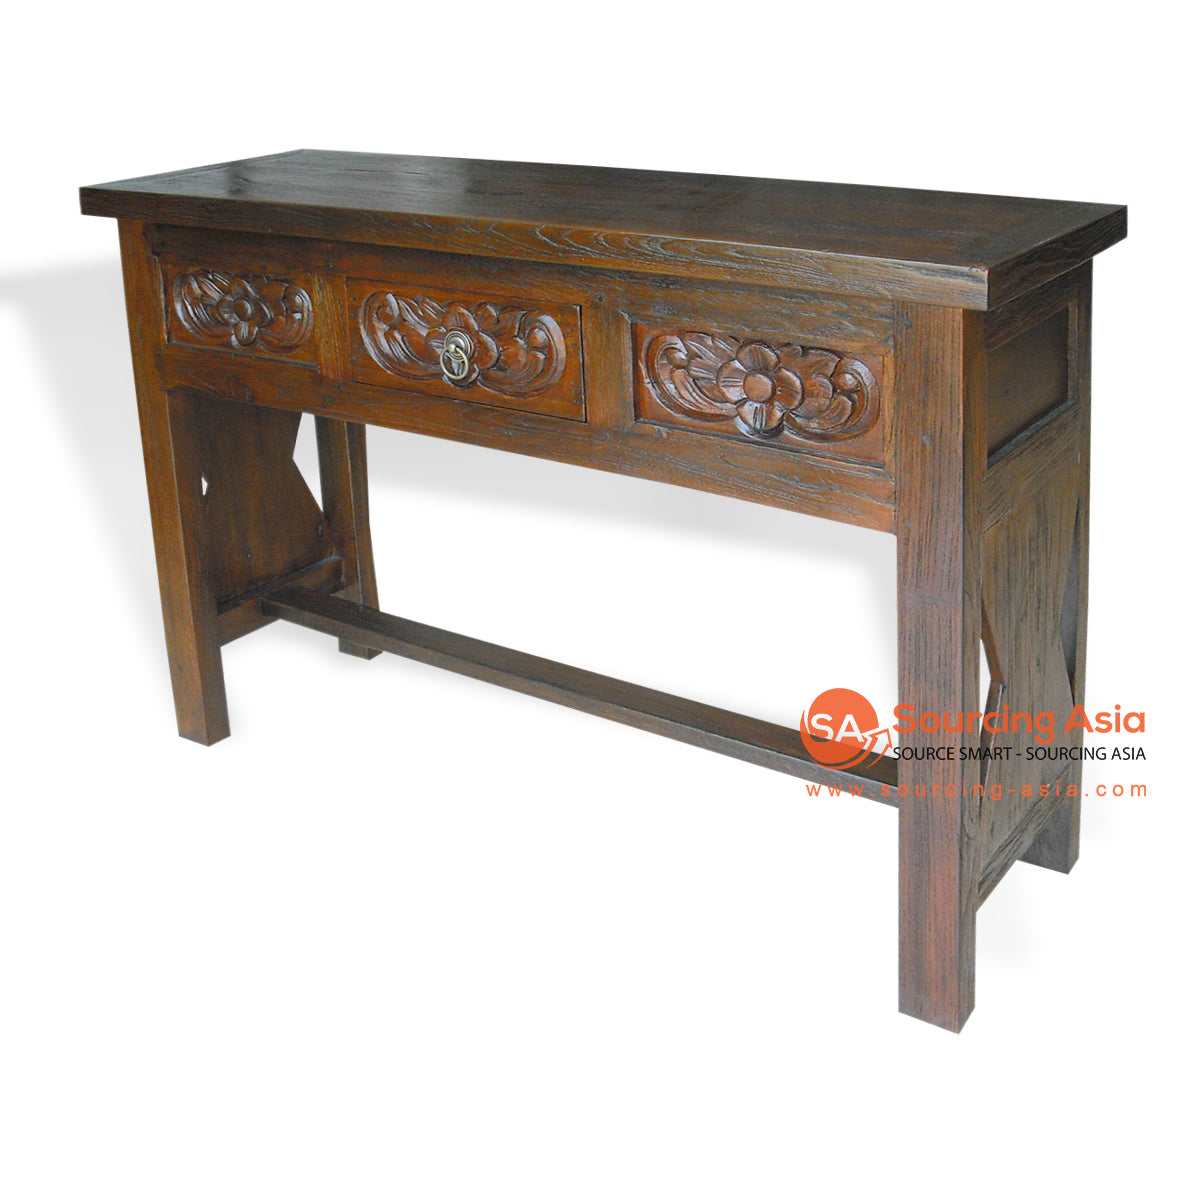 KYT10032 CONSOLE TABLE